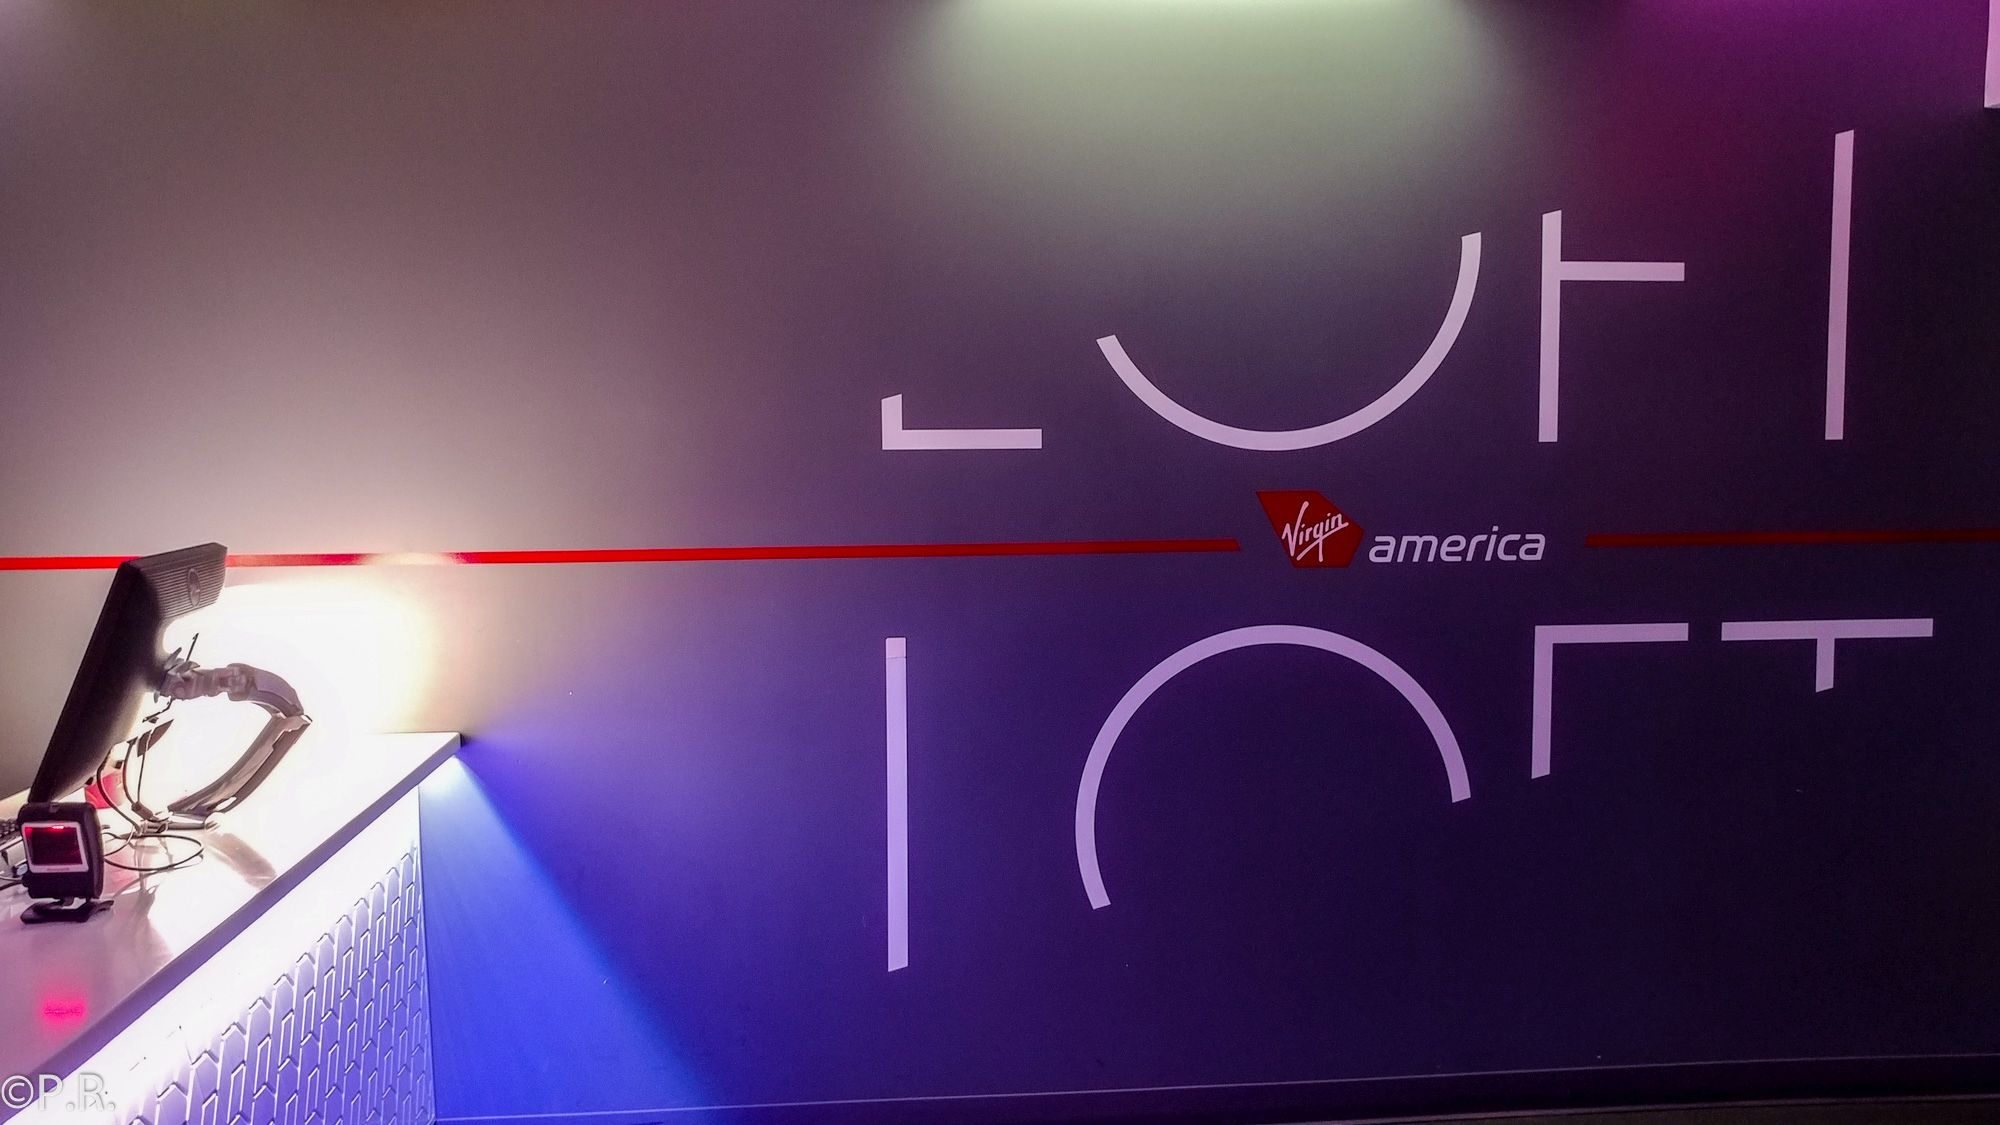 Lounge Review: Virgin America Loft LAX (CLOSED)